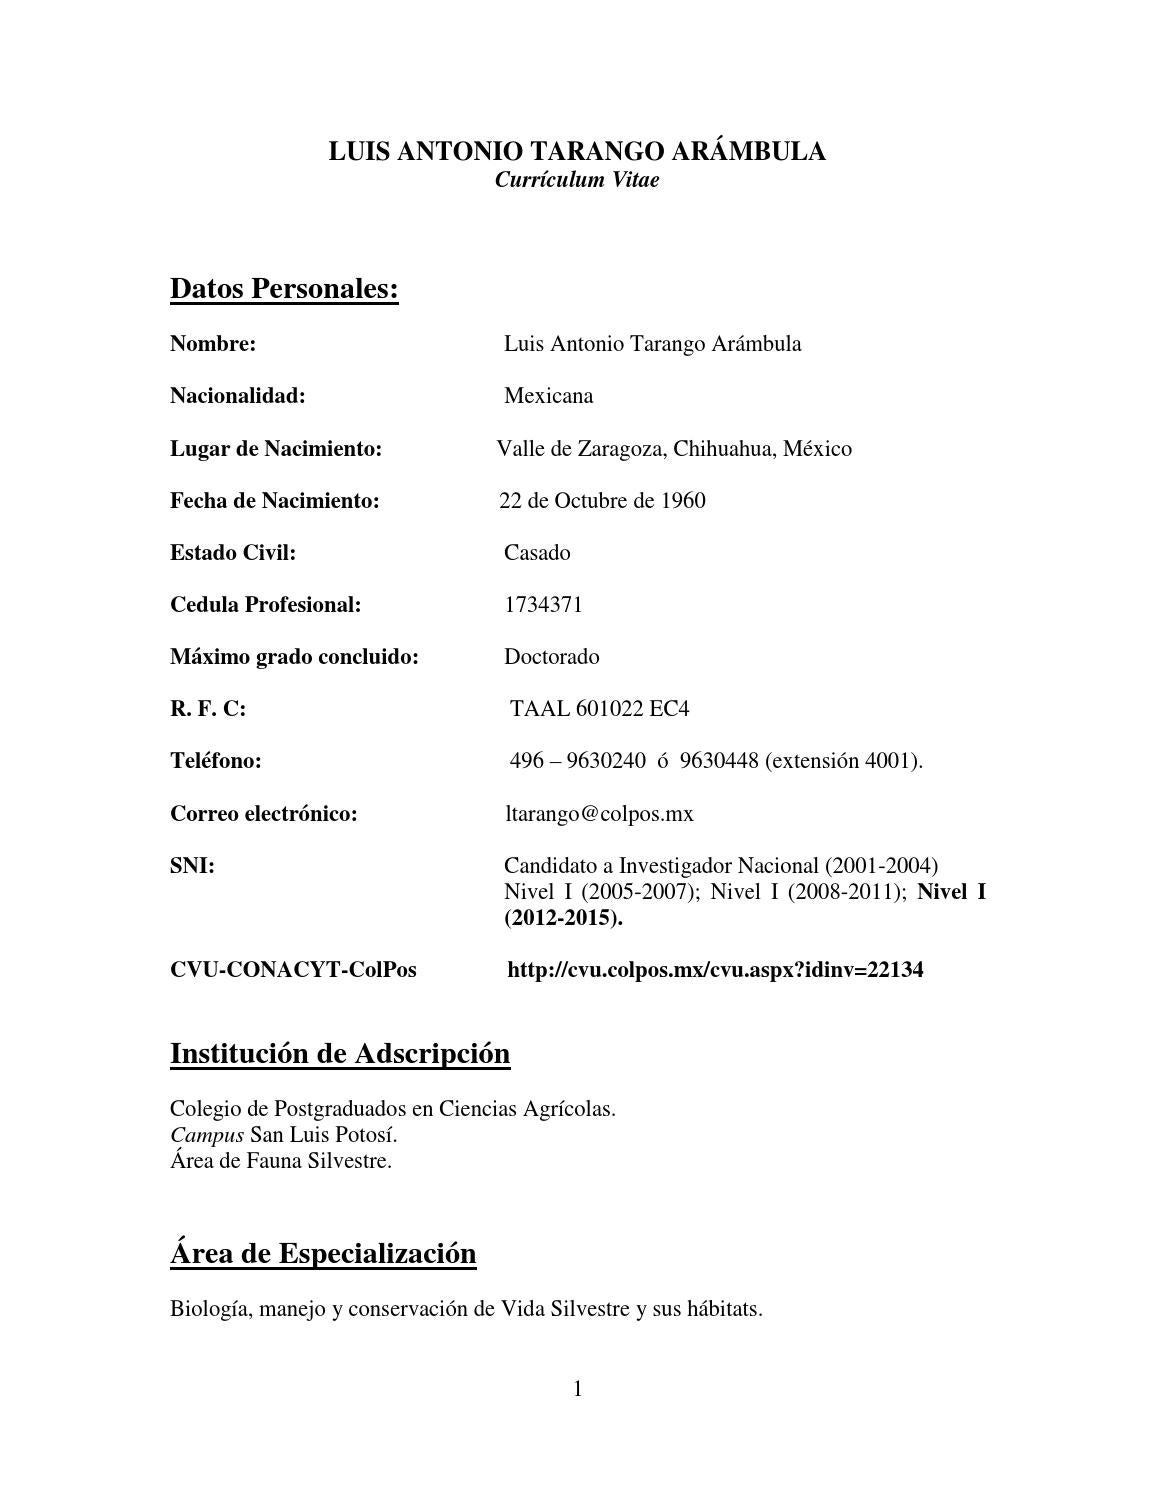 Curriculum vitae dr tarango libro digital by Luis - issuu